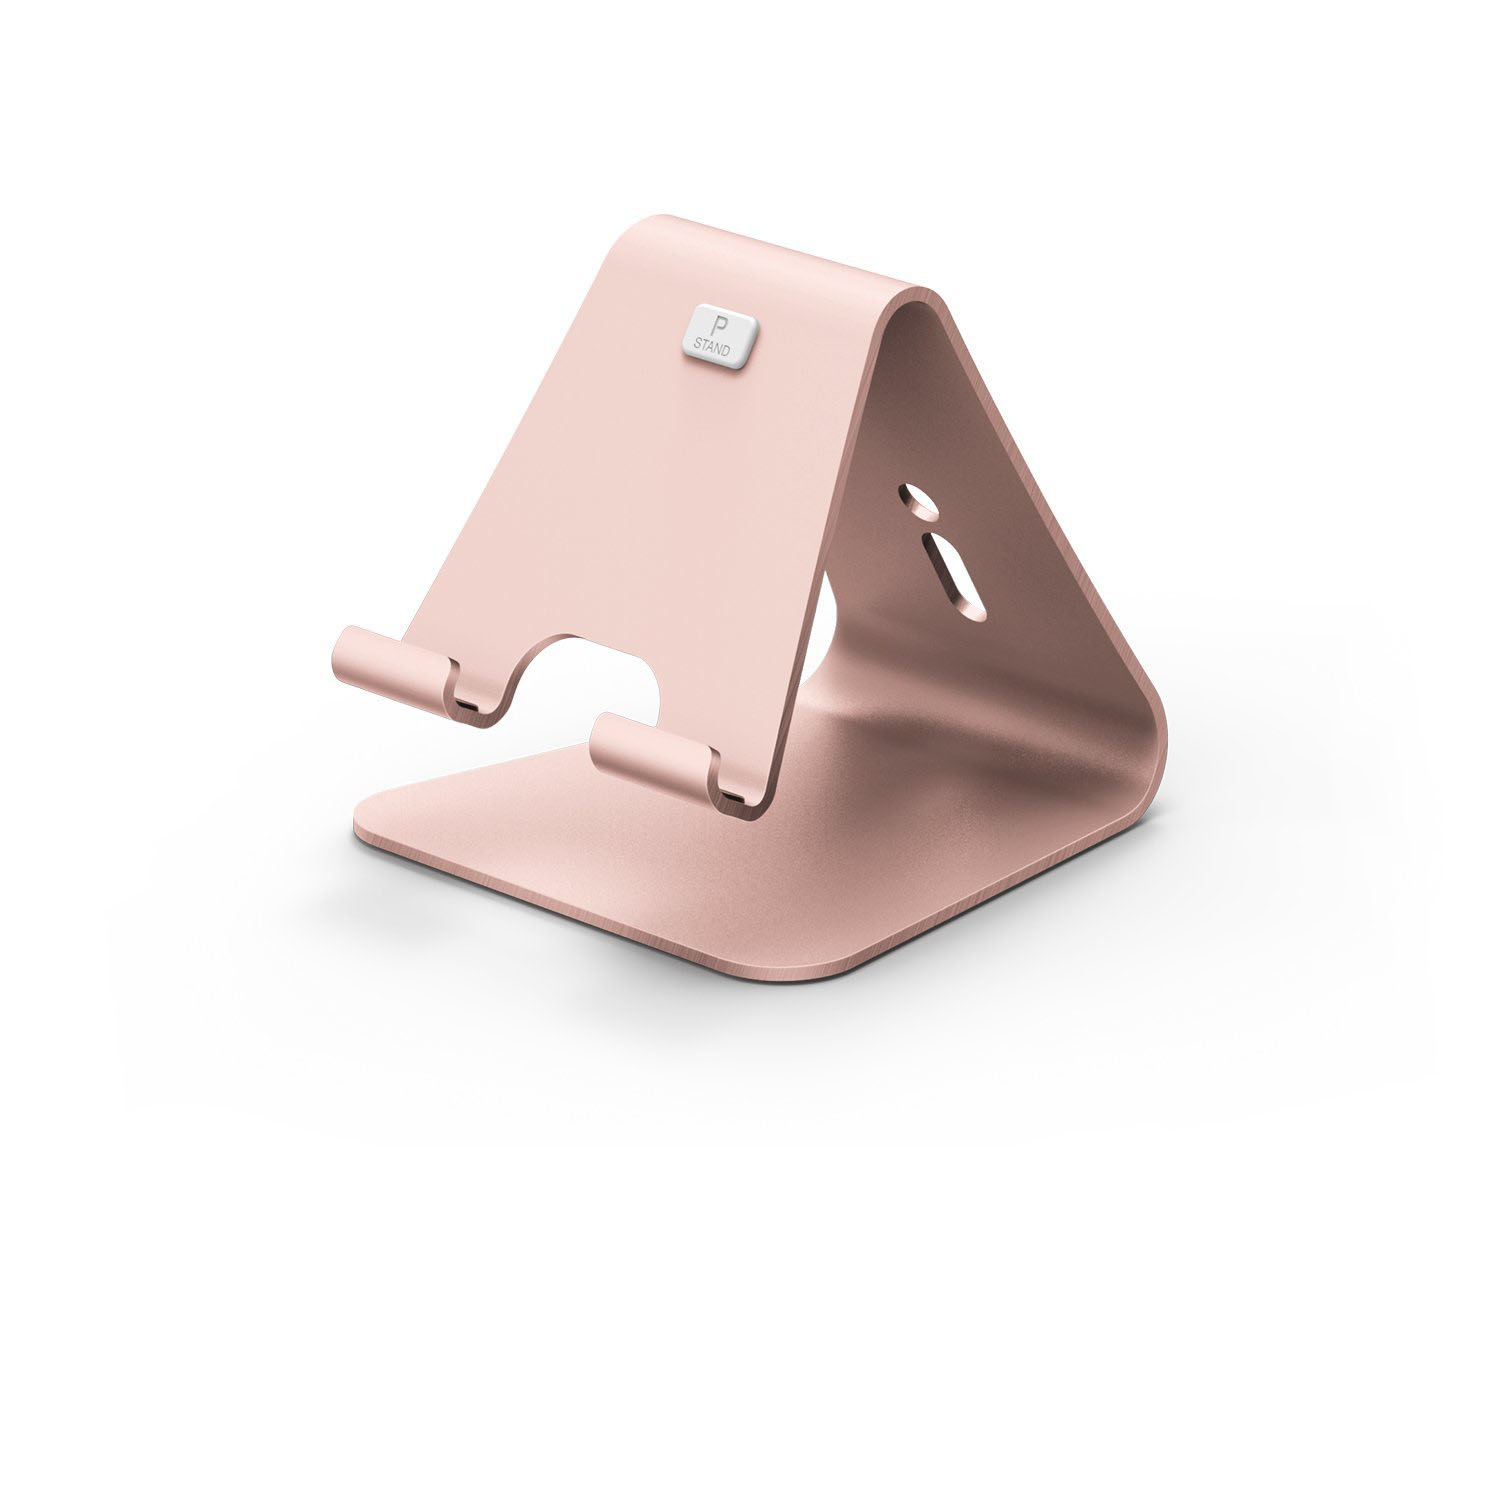 elago p4 stand for tablet pc rose gold 株式会社サンクチュアリ